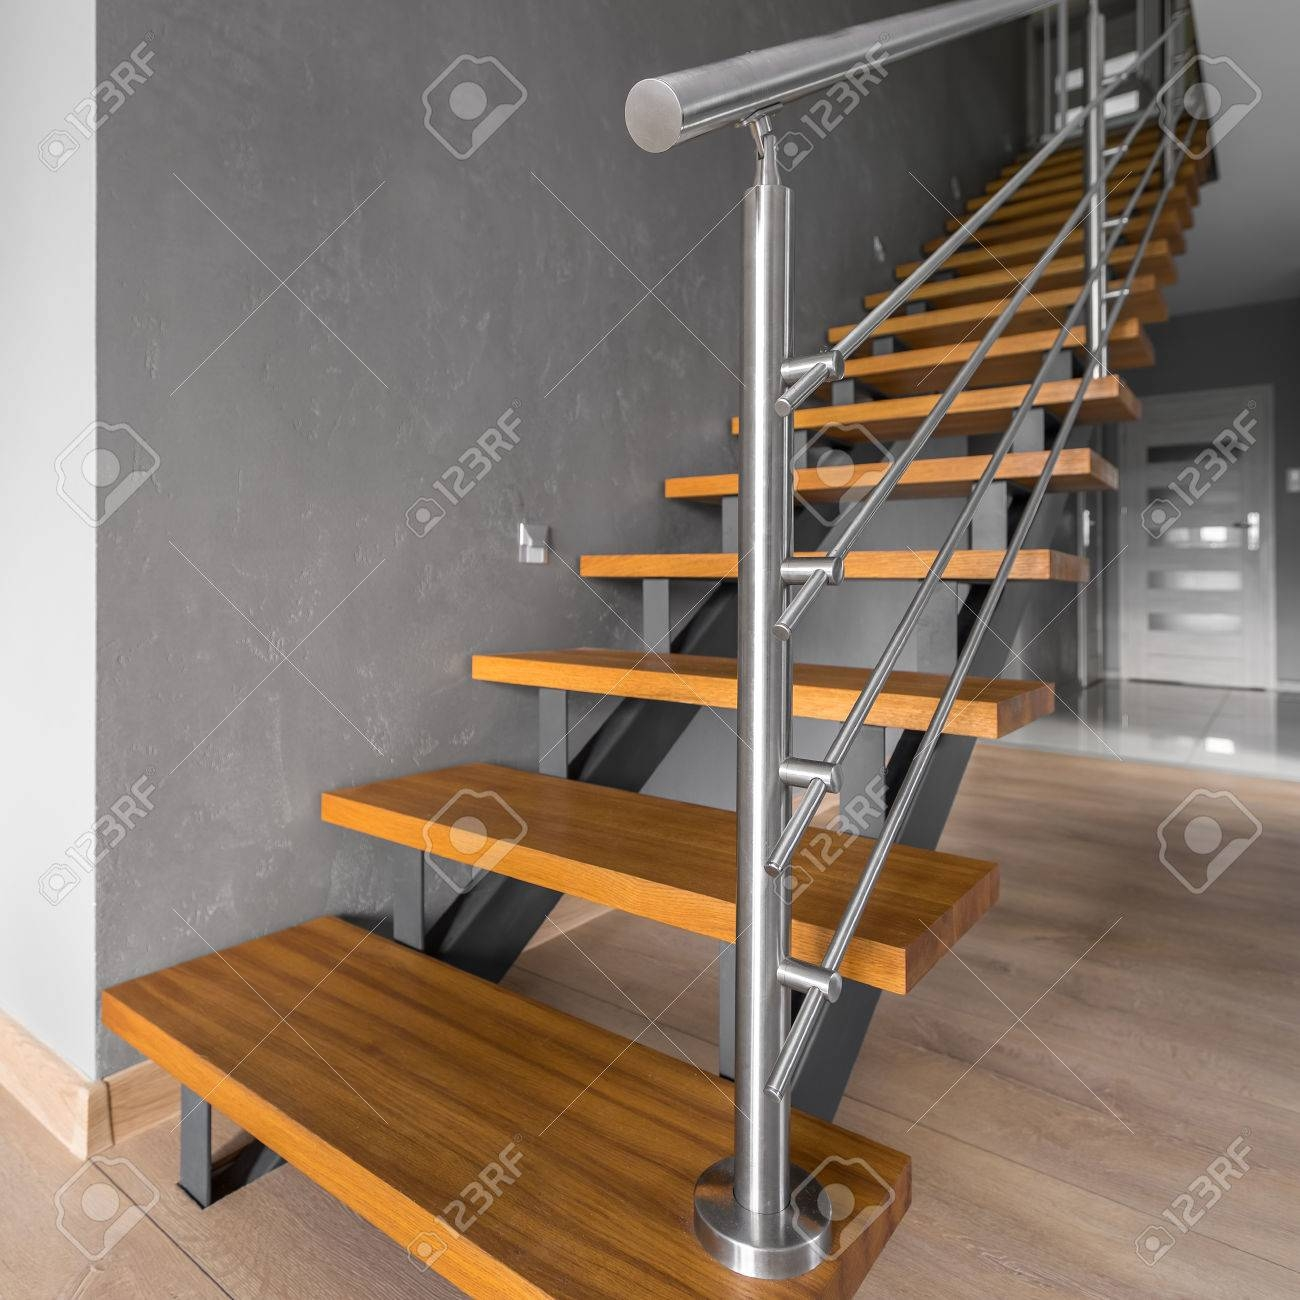 New Home Interior In Grey With Simple Wooden Staircase With Steel   Metal And Wood Stairs   Straight   Diy   Residential   Rustic   Stair Railing